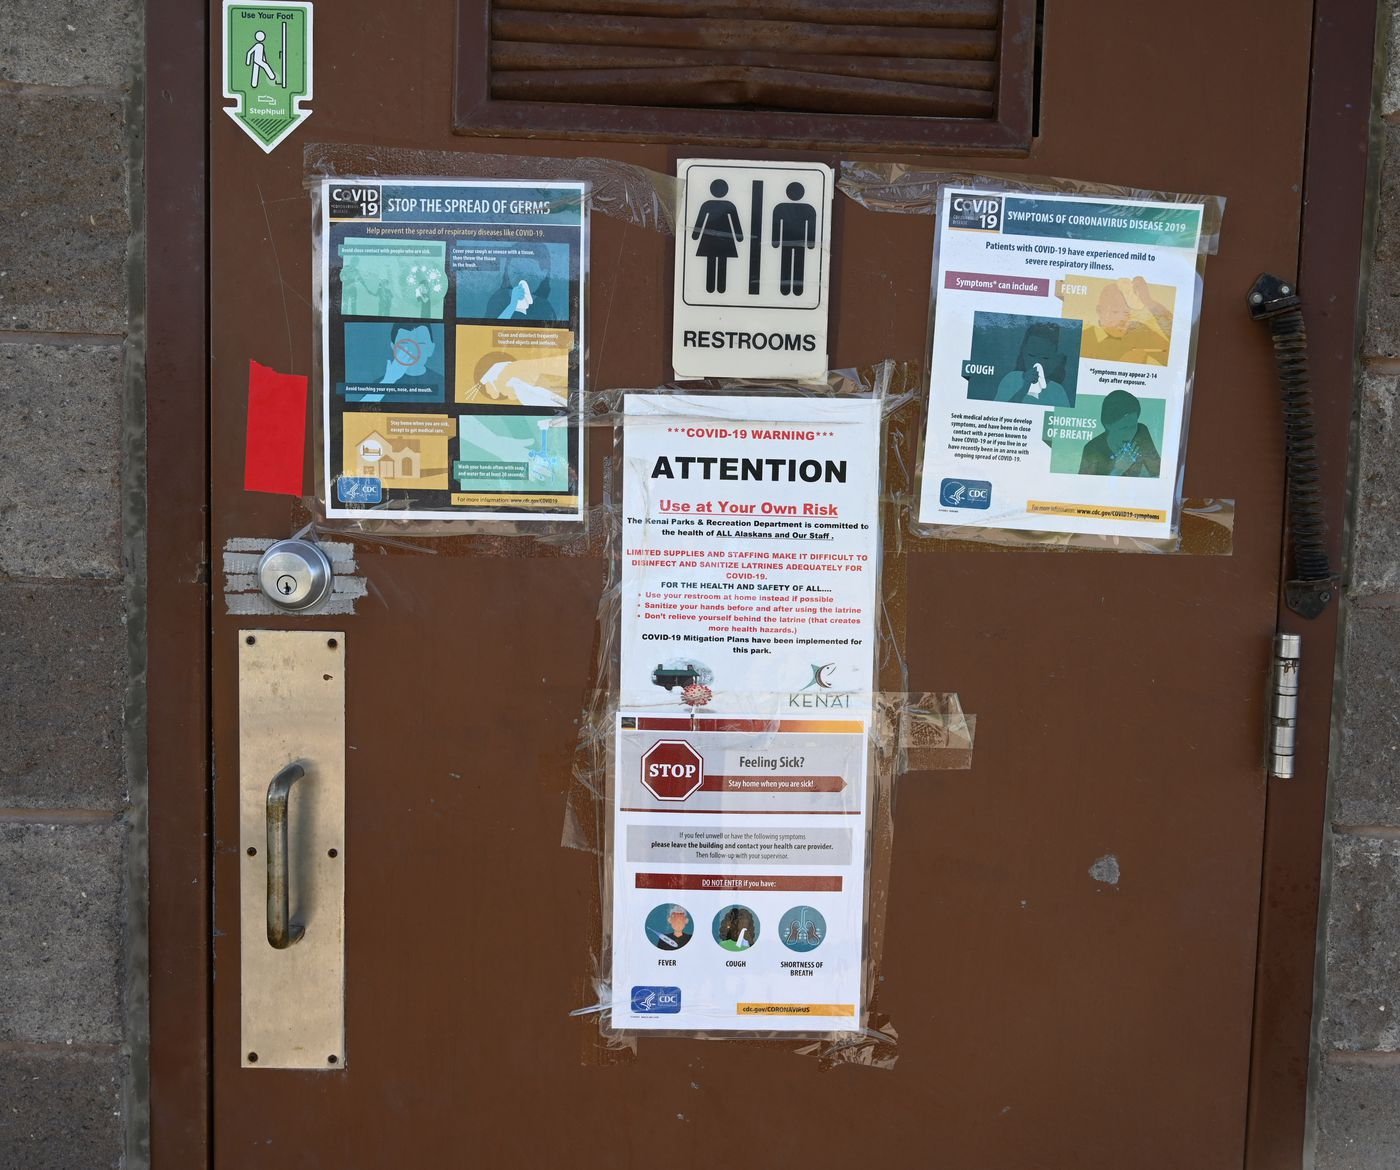 The outhouse doors at the Kenai River are adorned with COVID-19 information. (Anne Raup / ADN)